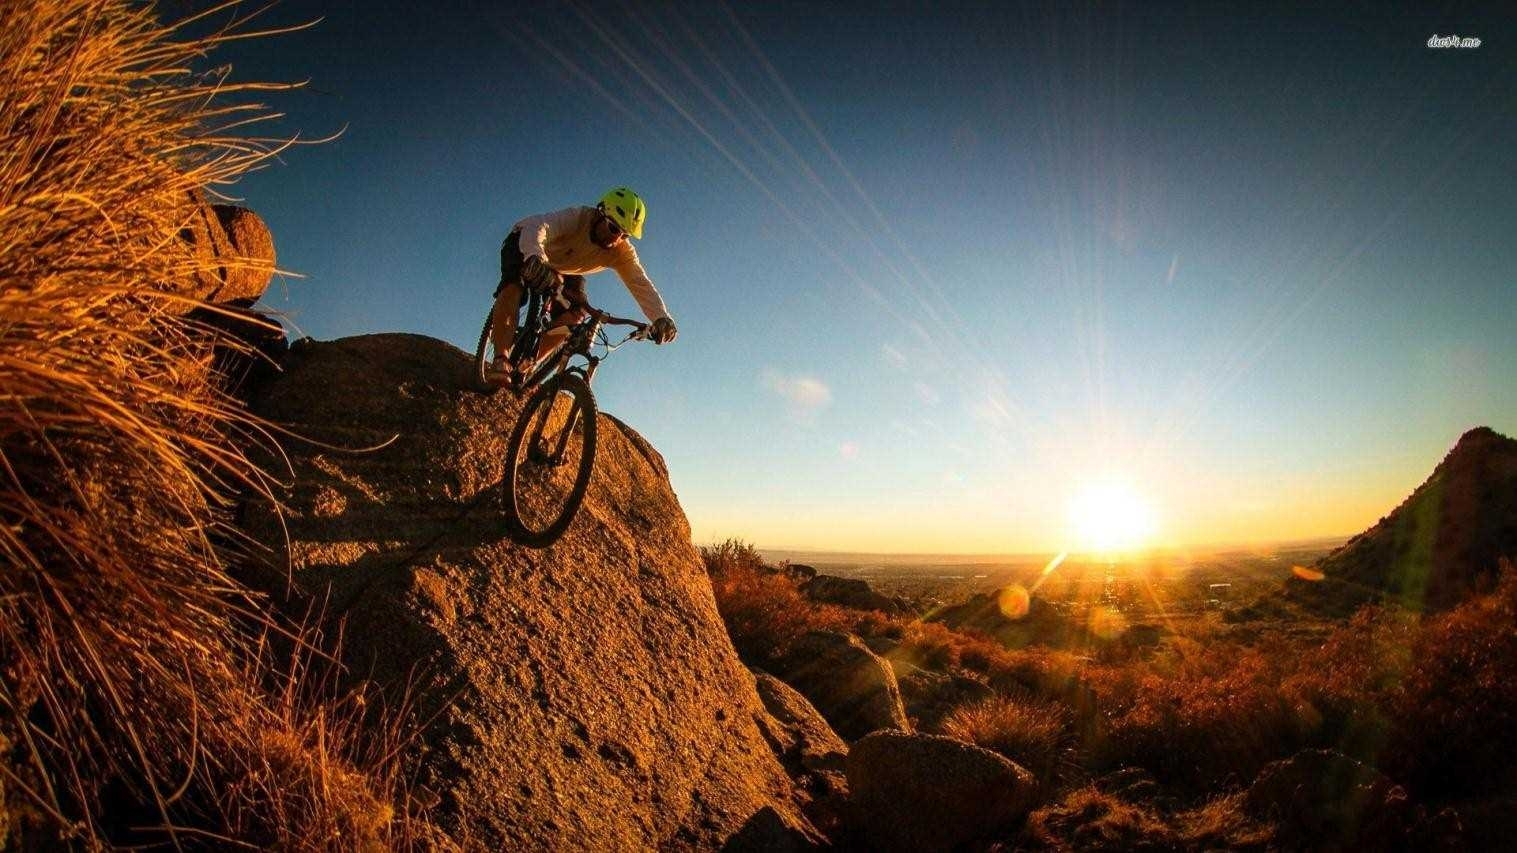 hd desktop high definition mountain mountain bike wallpaper biking